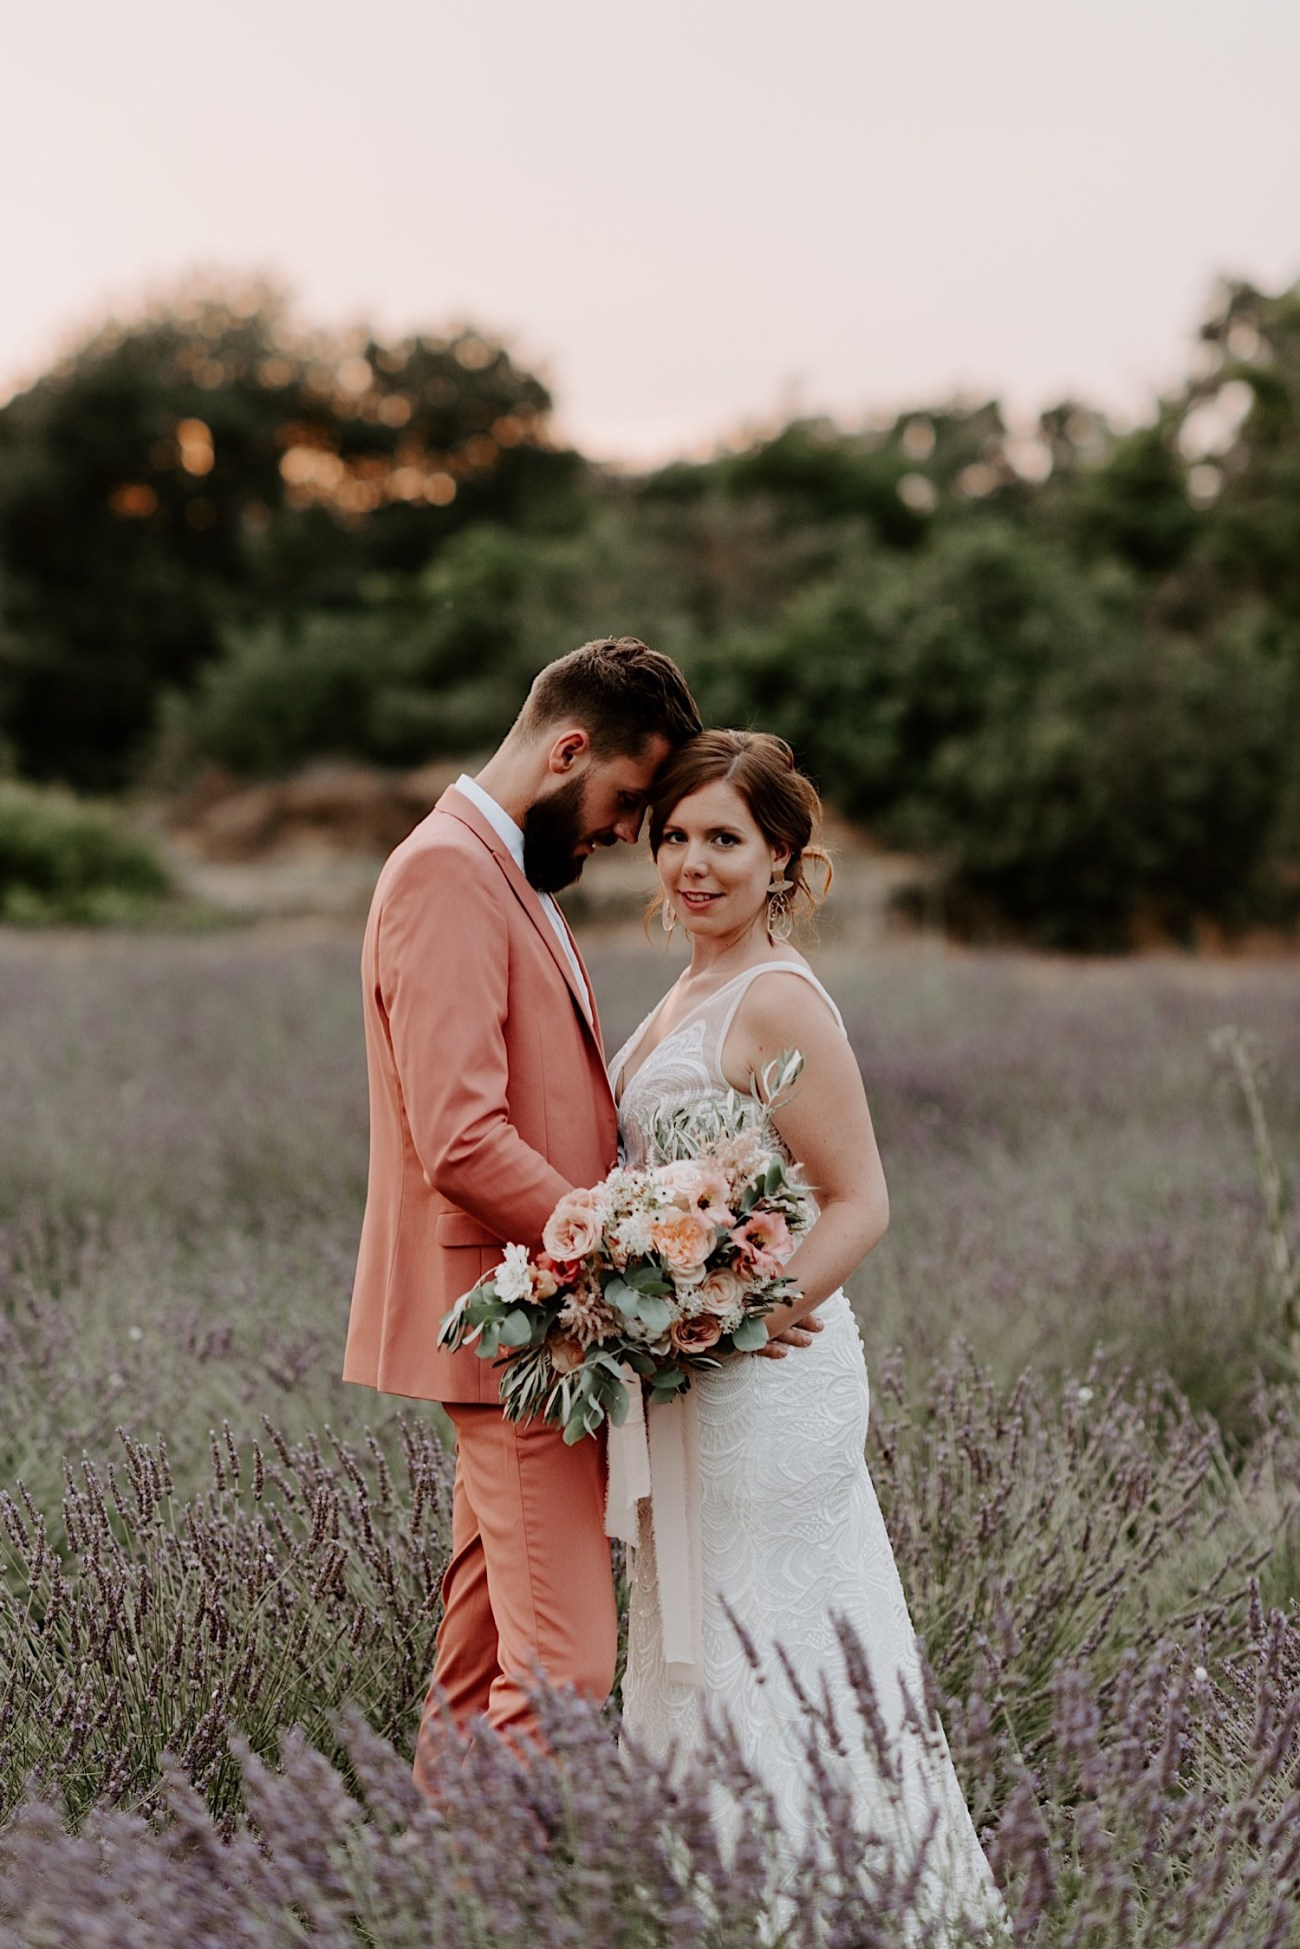 Terre Ugo Un Marriage En Provence Lavender Field Wedding French Wedding Provence Wedding Destination Wedding France Photographe De Marriage Provence France Anais Possamai Photography 31